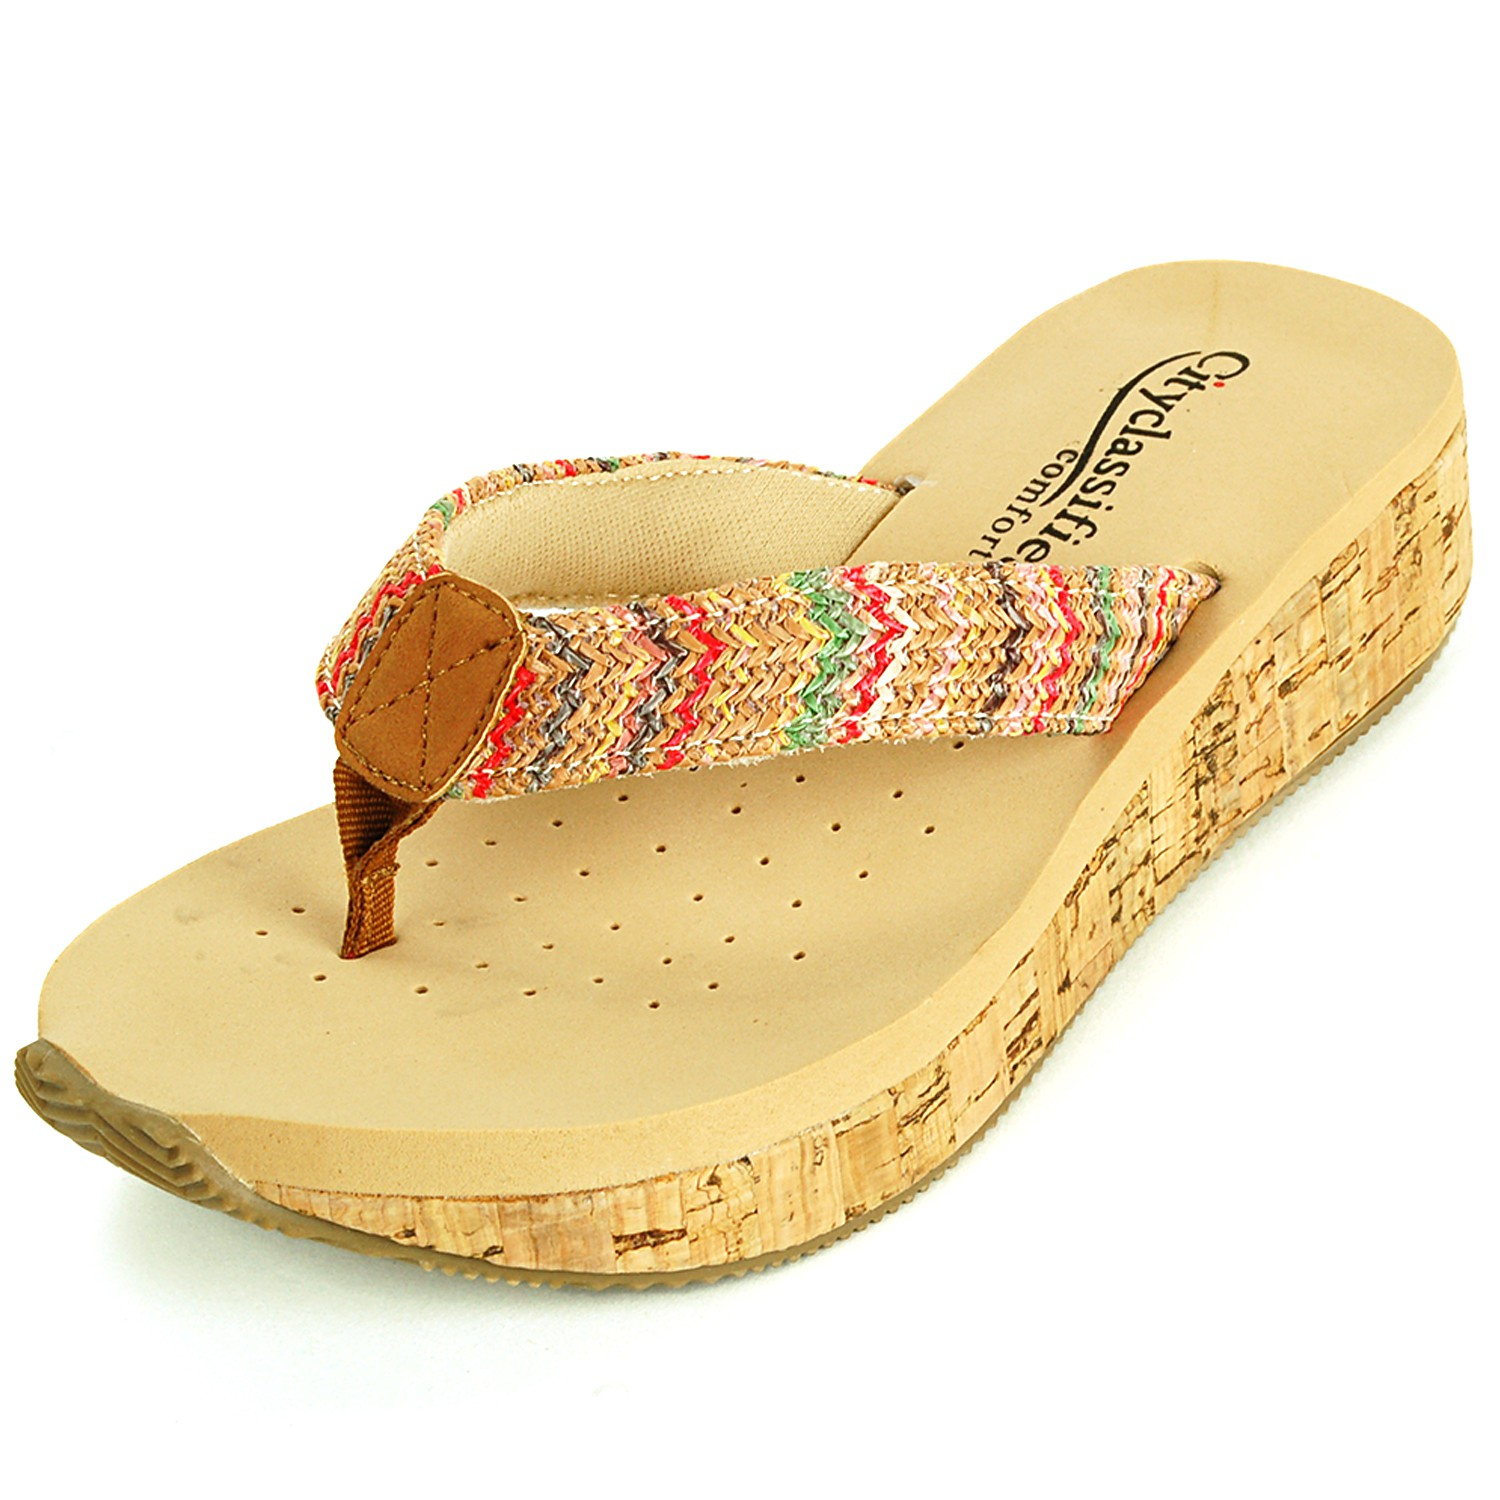 Womens Sandals Wedge Heel Cork Mule Padded Comfort Open ...